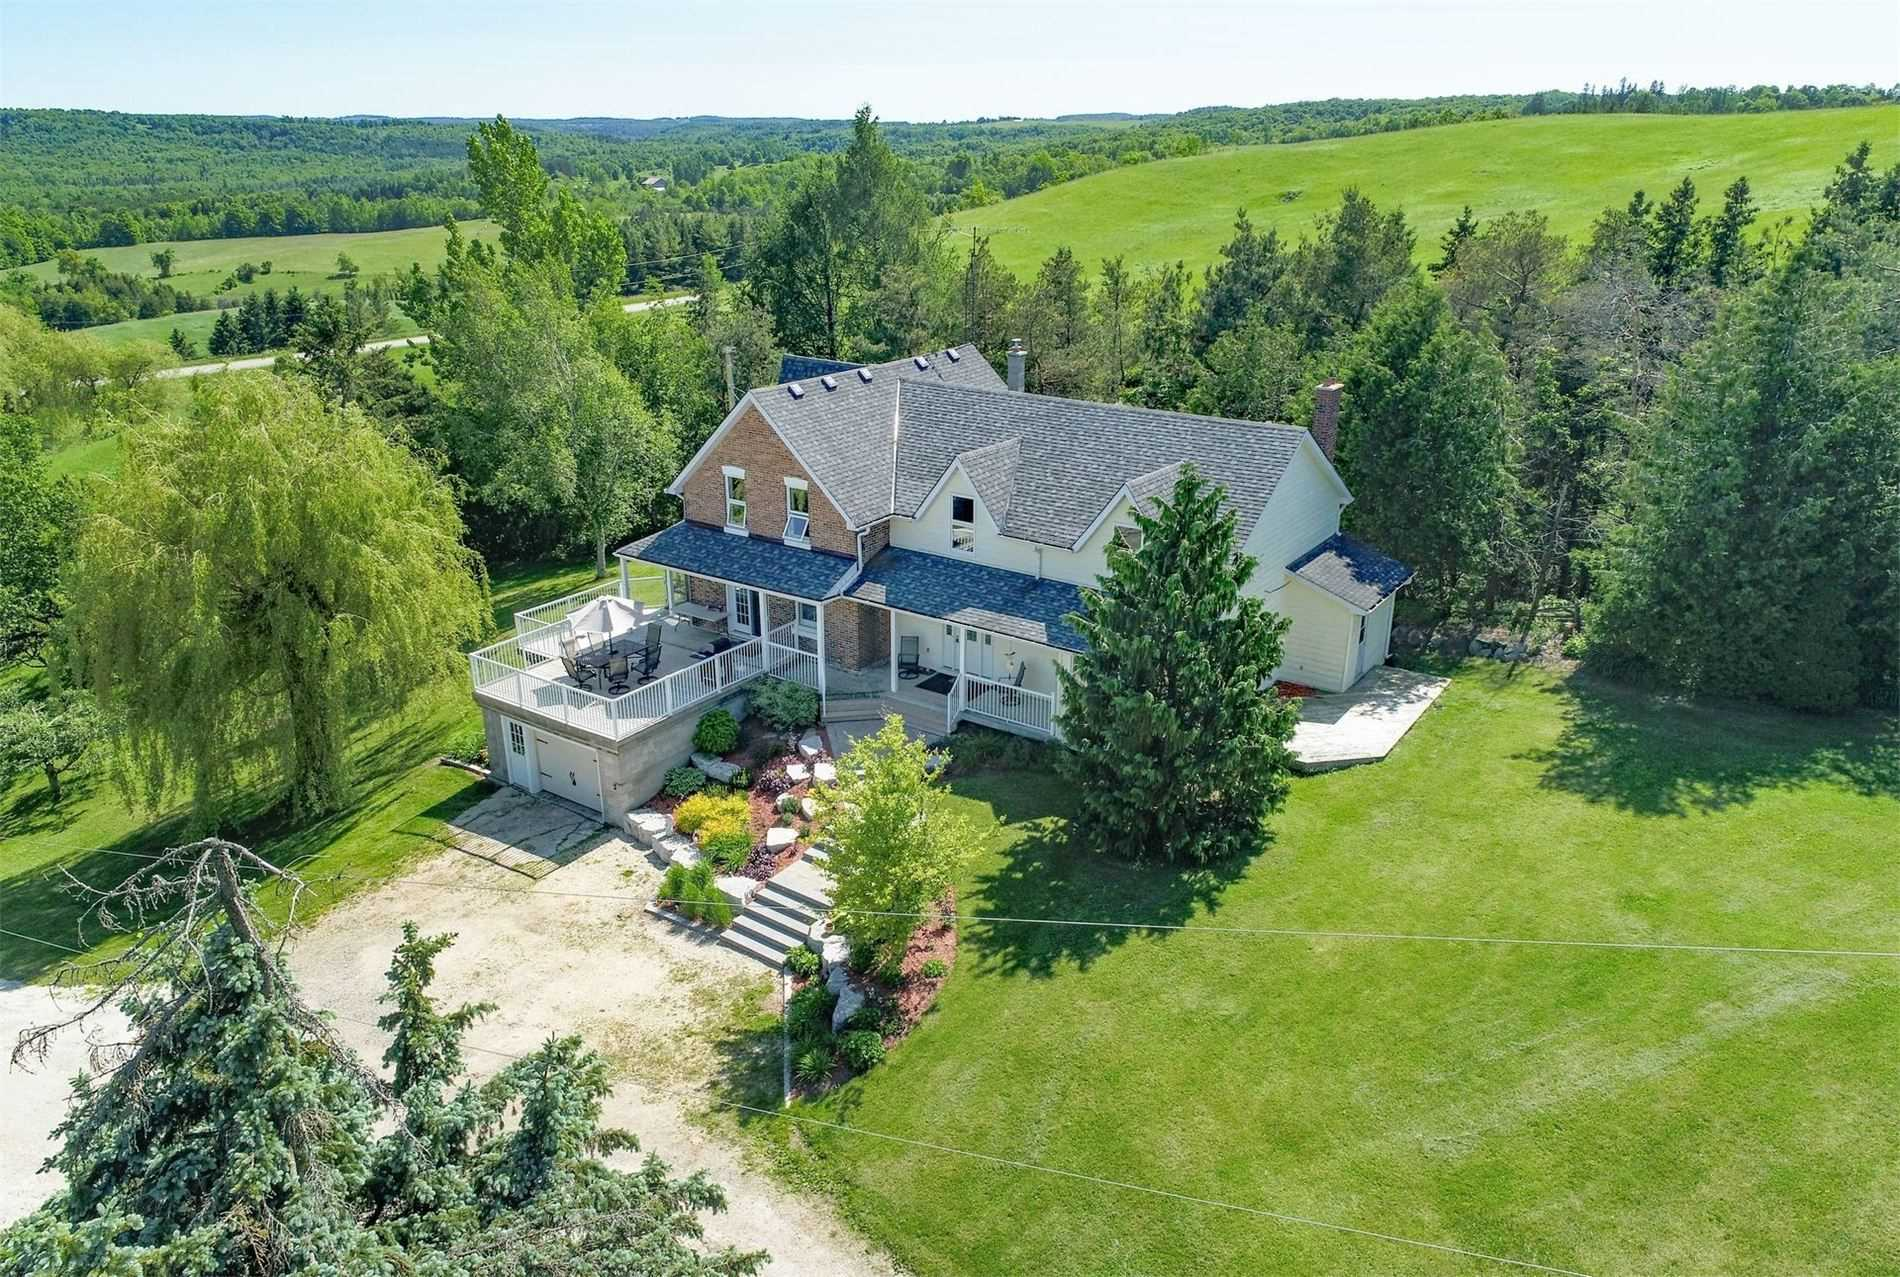 FEATURED LISTING: 587499 10 Sideroad Mulmur